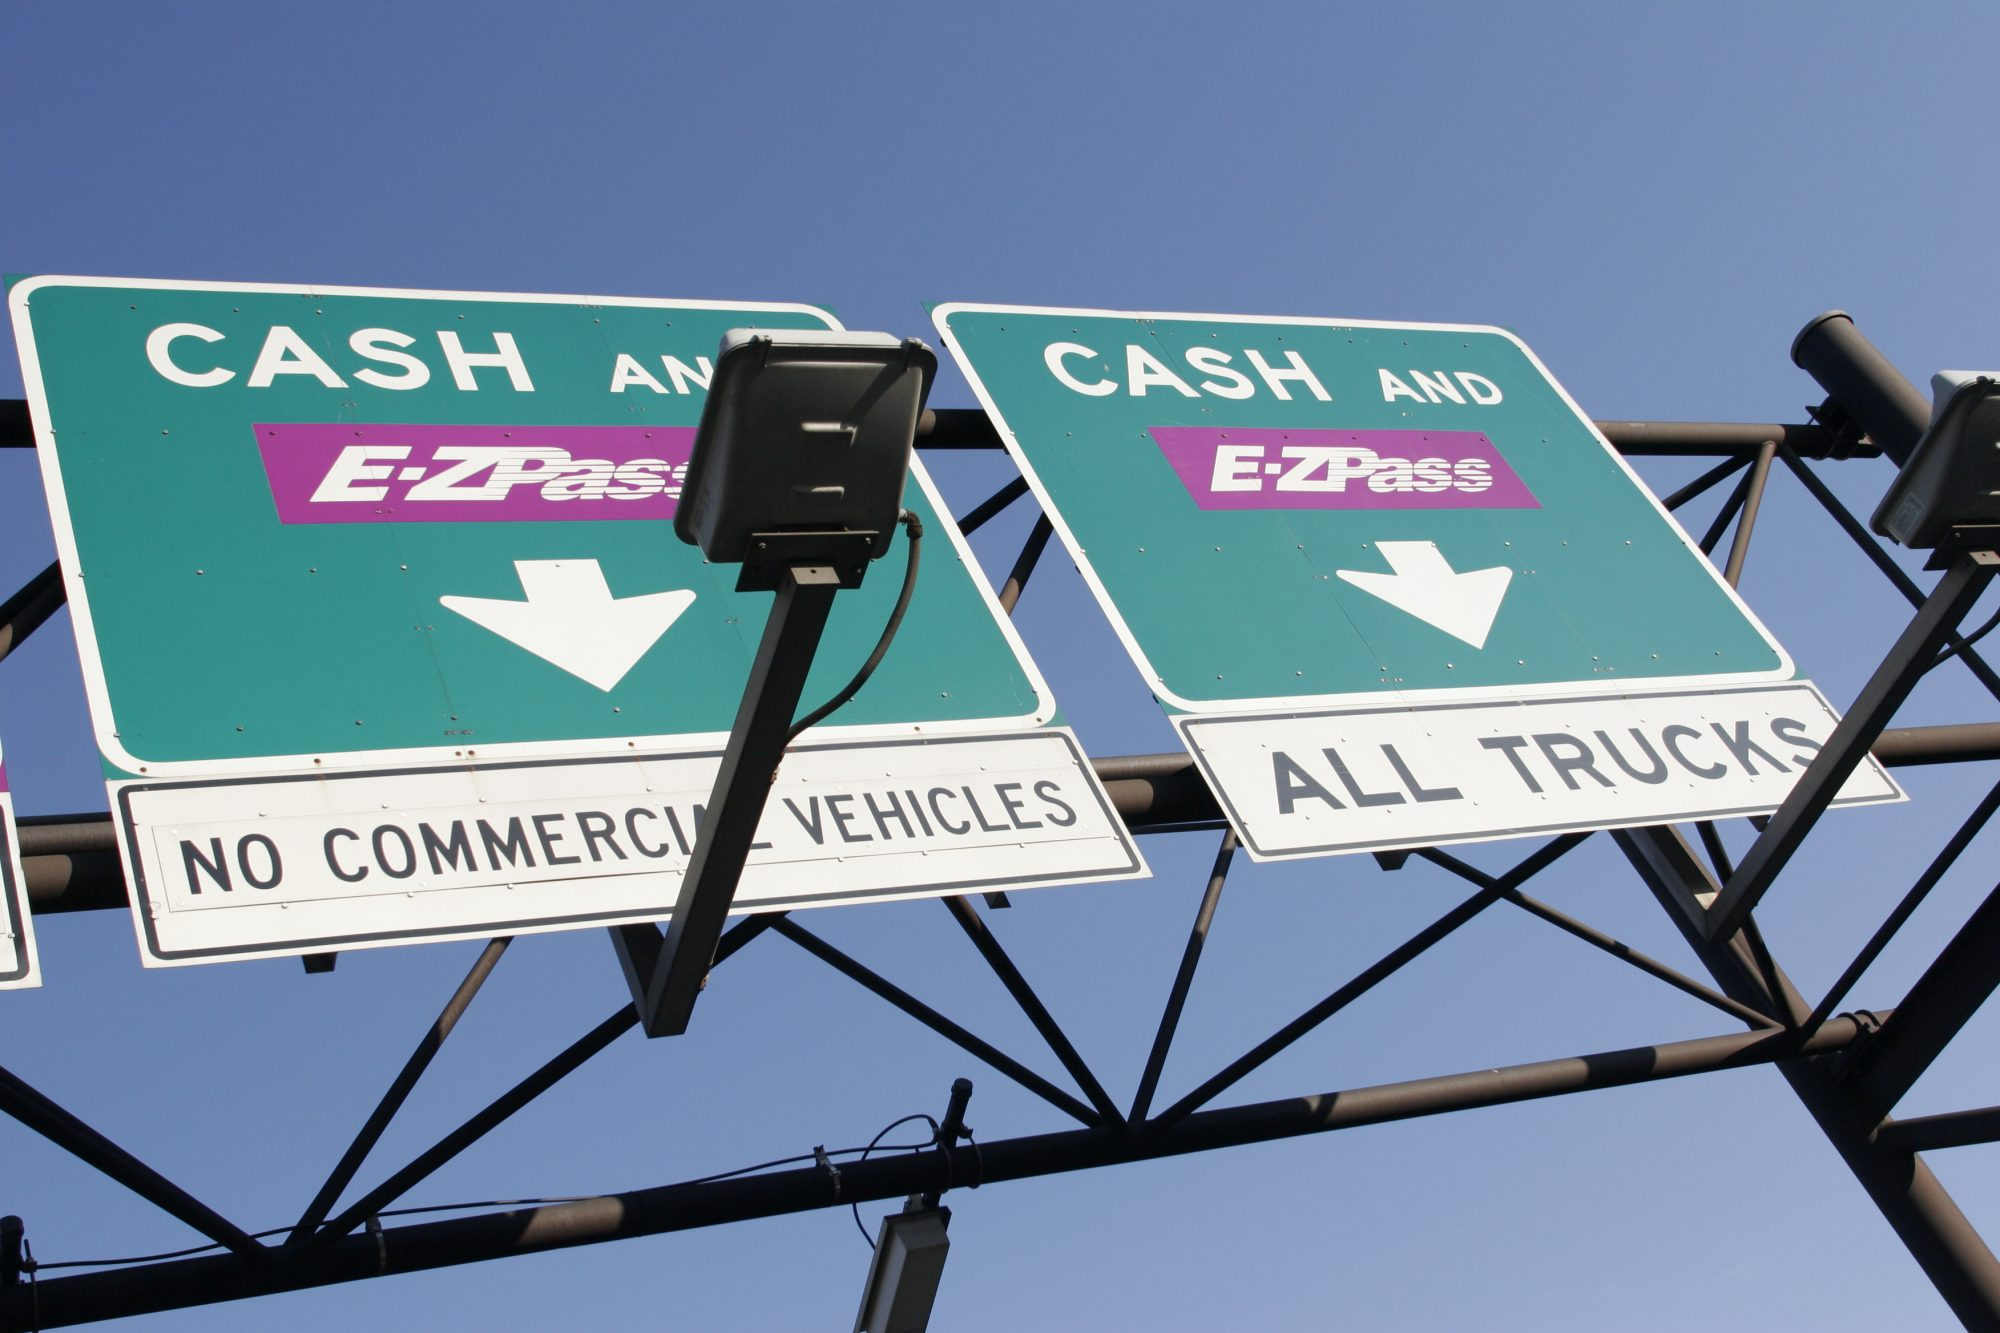 Cash and E-Z Pass signs at the New Jersey Turnpike.